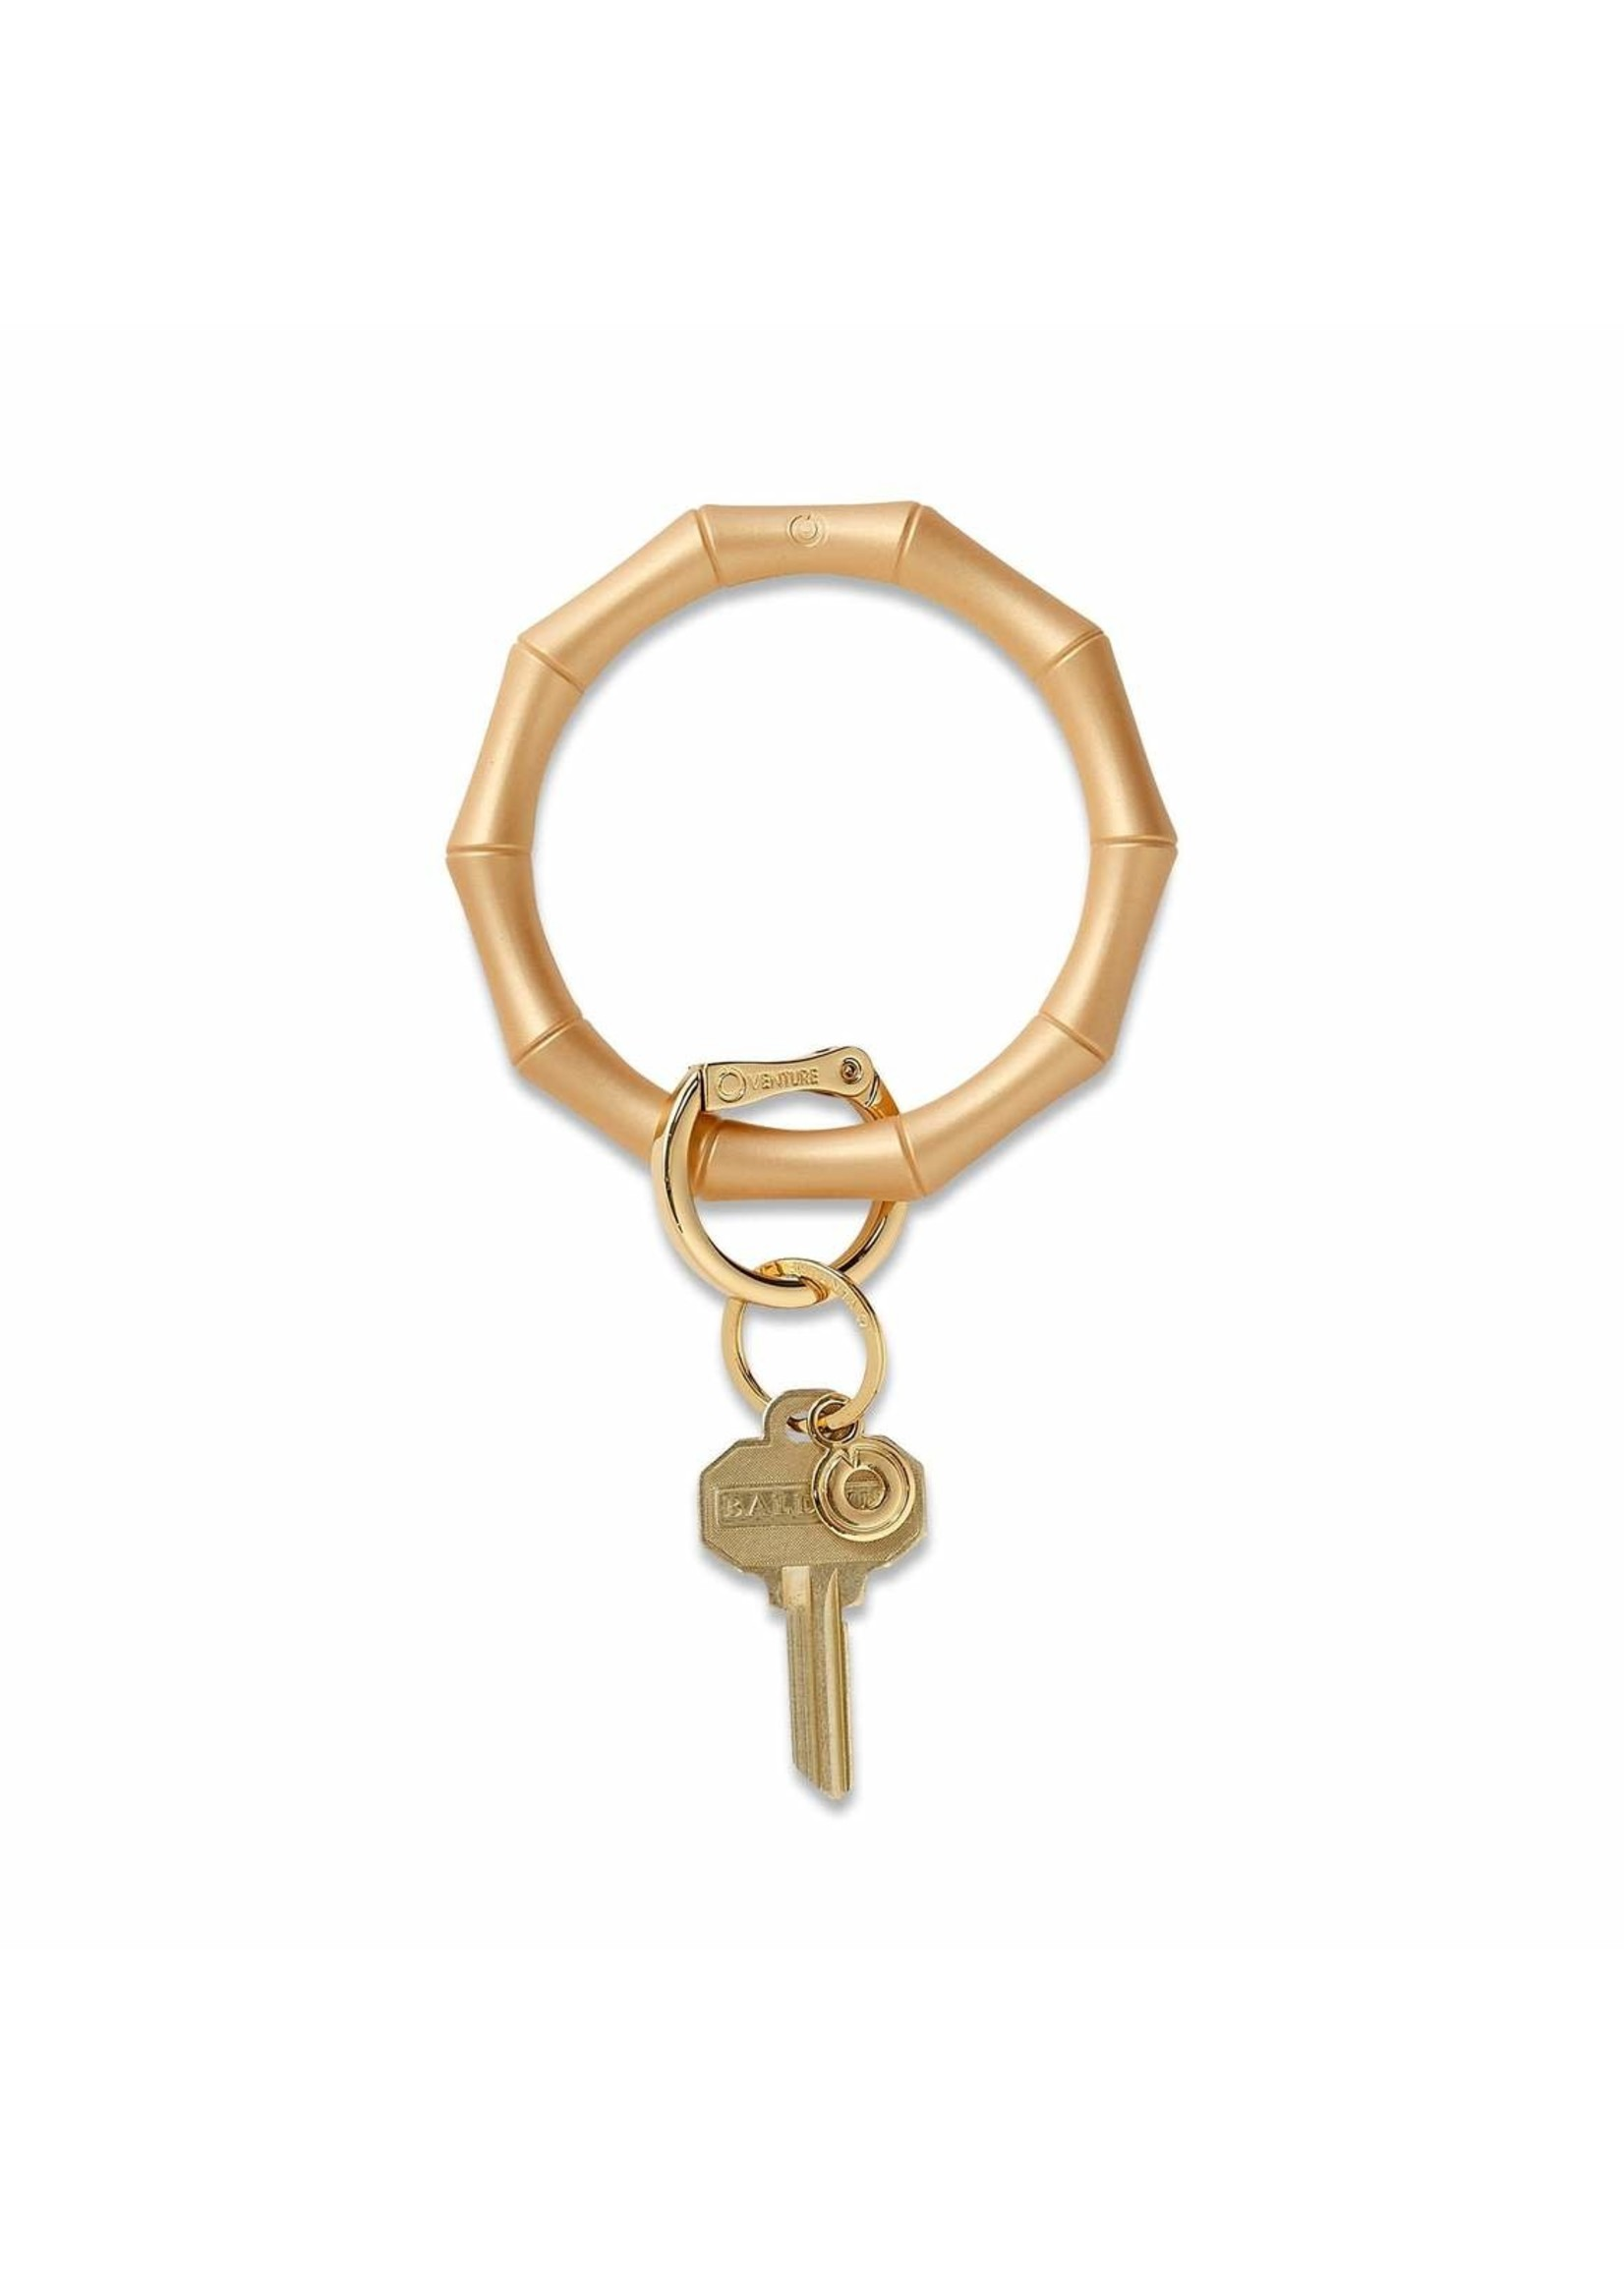 O-venture Silicone Key Ring - Gold Bamboo